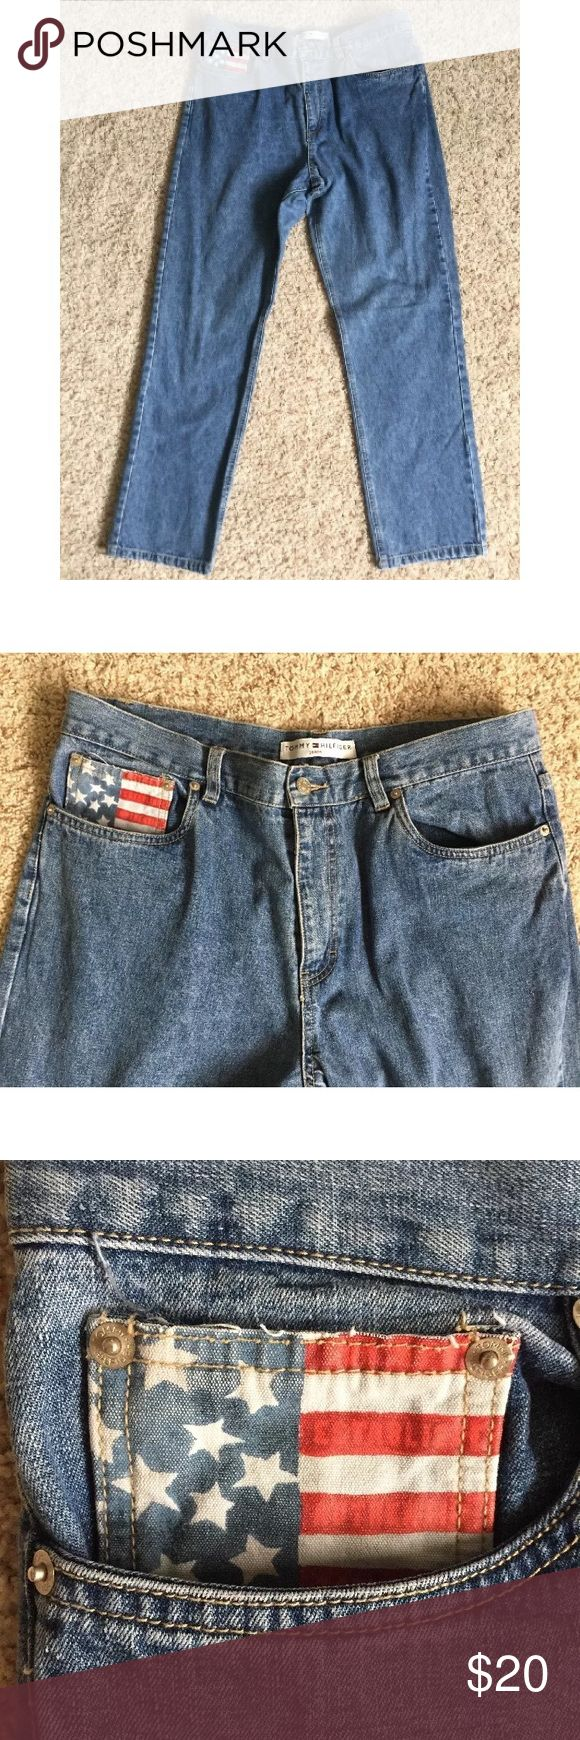 """Tommy Hilfiger high waist mom jeans flag pocket 14 High waist straight leg women's jeans from Tommy Hilfiger. American flag design on front pocket. Love these as is or would make a great pair of cutoff shorts! Size 14, measurements below. 100% cotton. Light wear to bottom hems but no fraying. Please see pictures. No stains, holes, or other major flaws.  Measurements taken across front Waist: 17"""" Rise: 12"""" Inseam: 30.5"""" Tommy Hilfiger Jeans Straight Leg"""